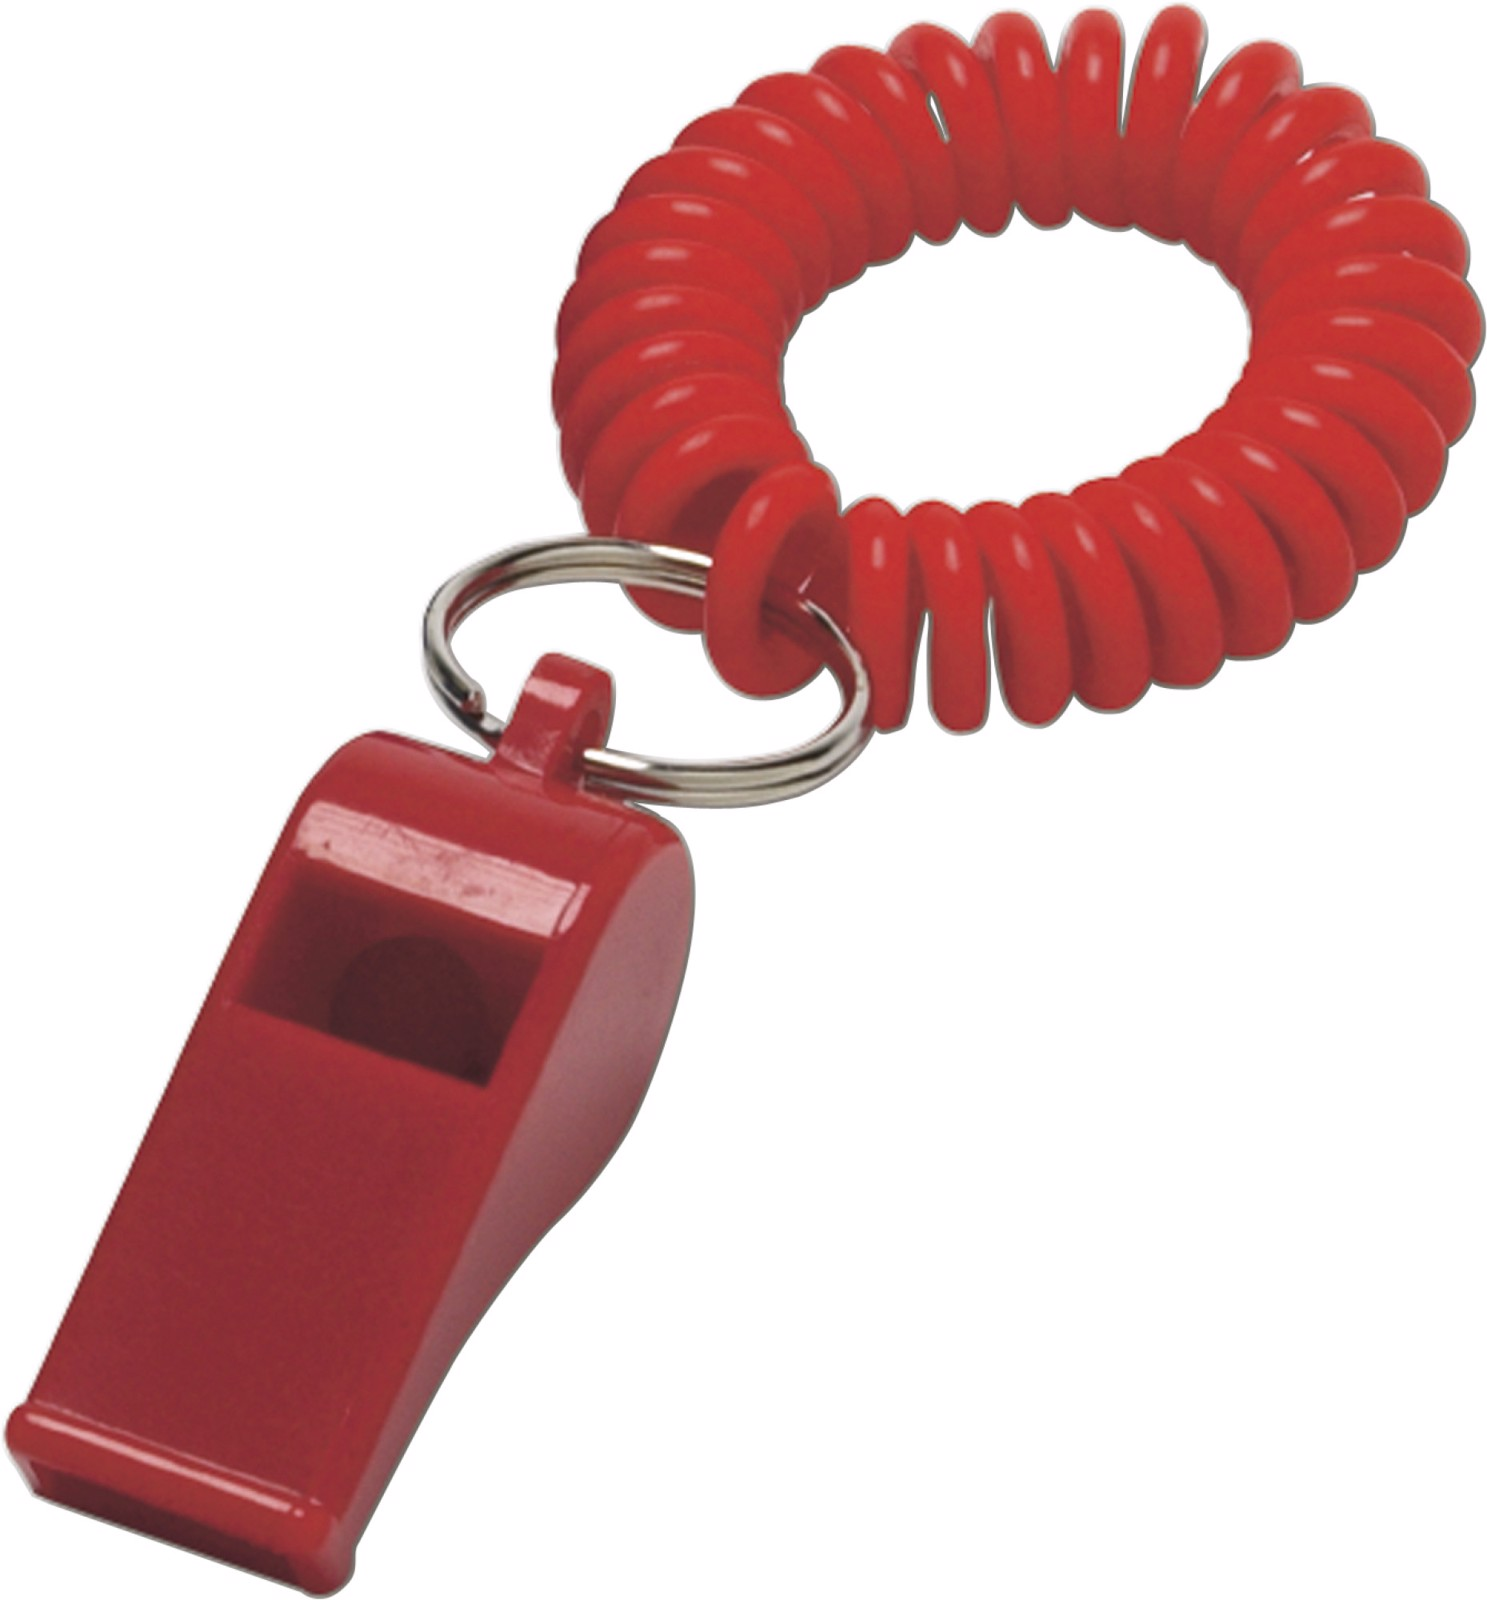 ABS whistle - Red